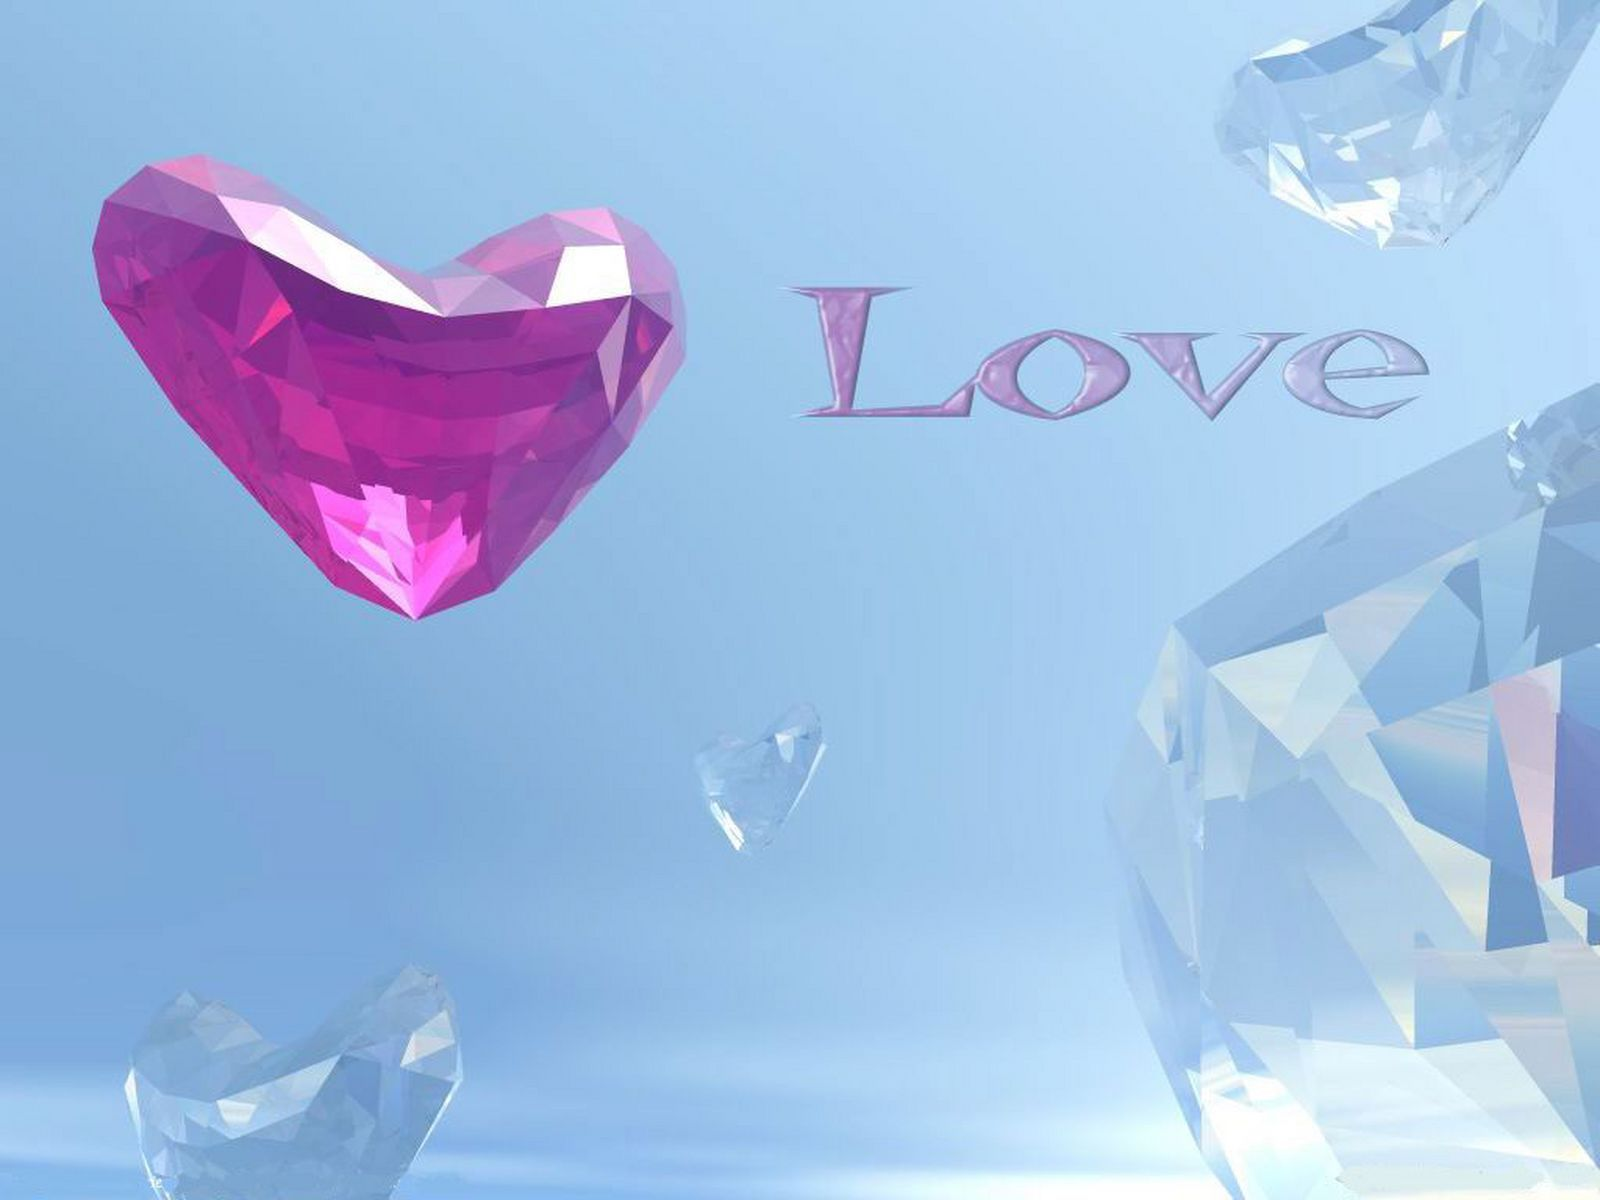 Love Wallpapers Only : Mazapoint: Love Wallpapers